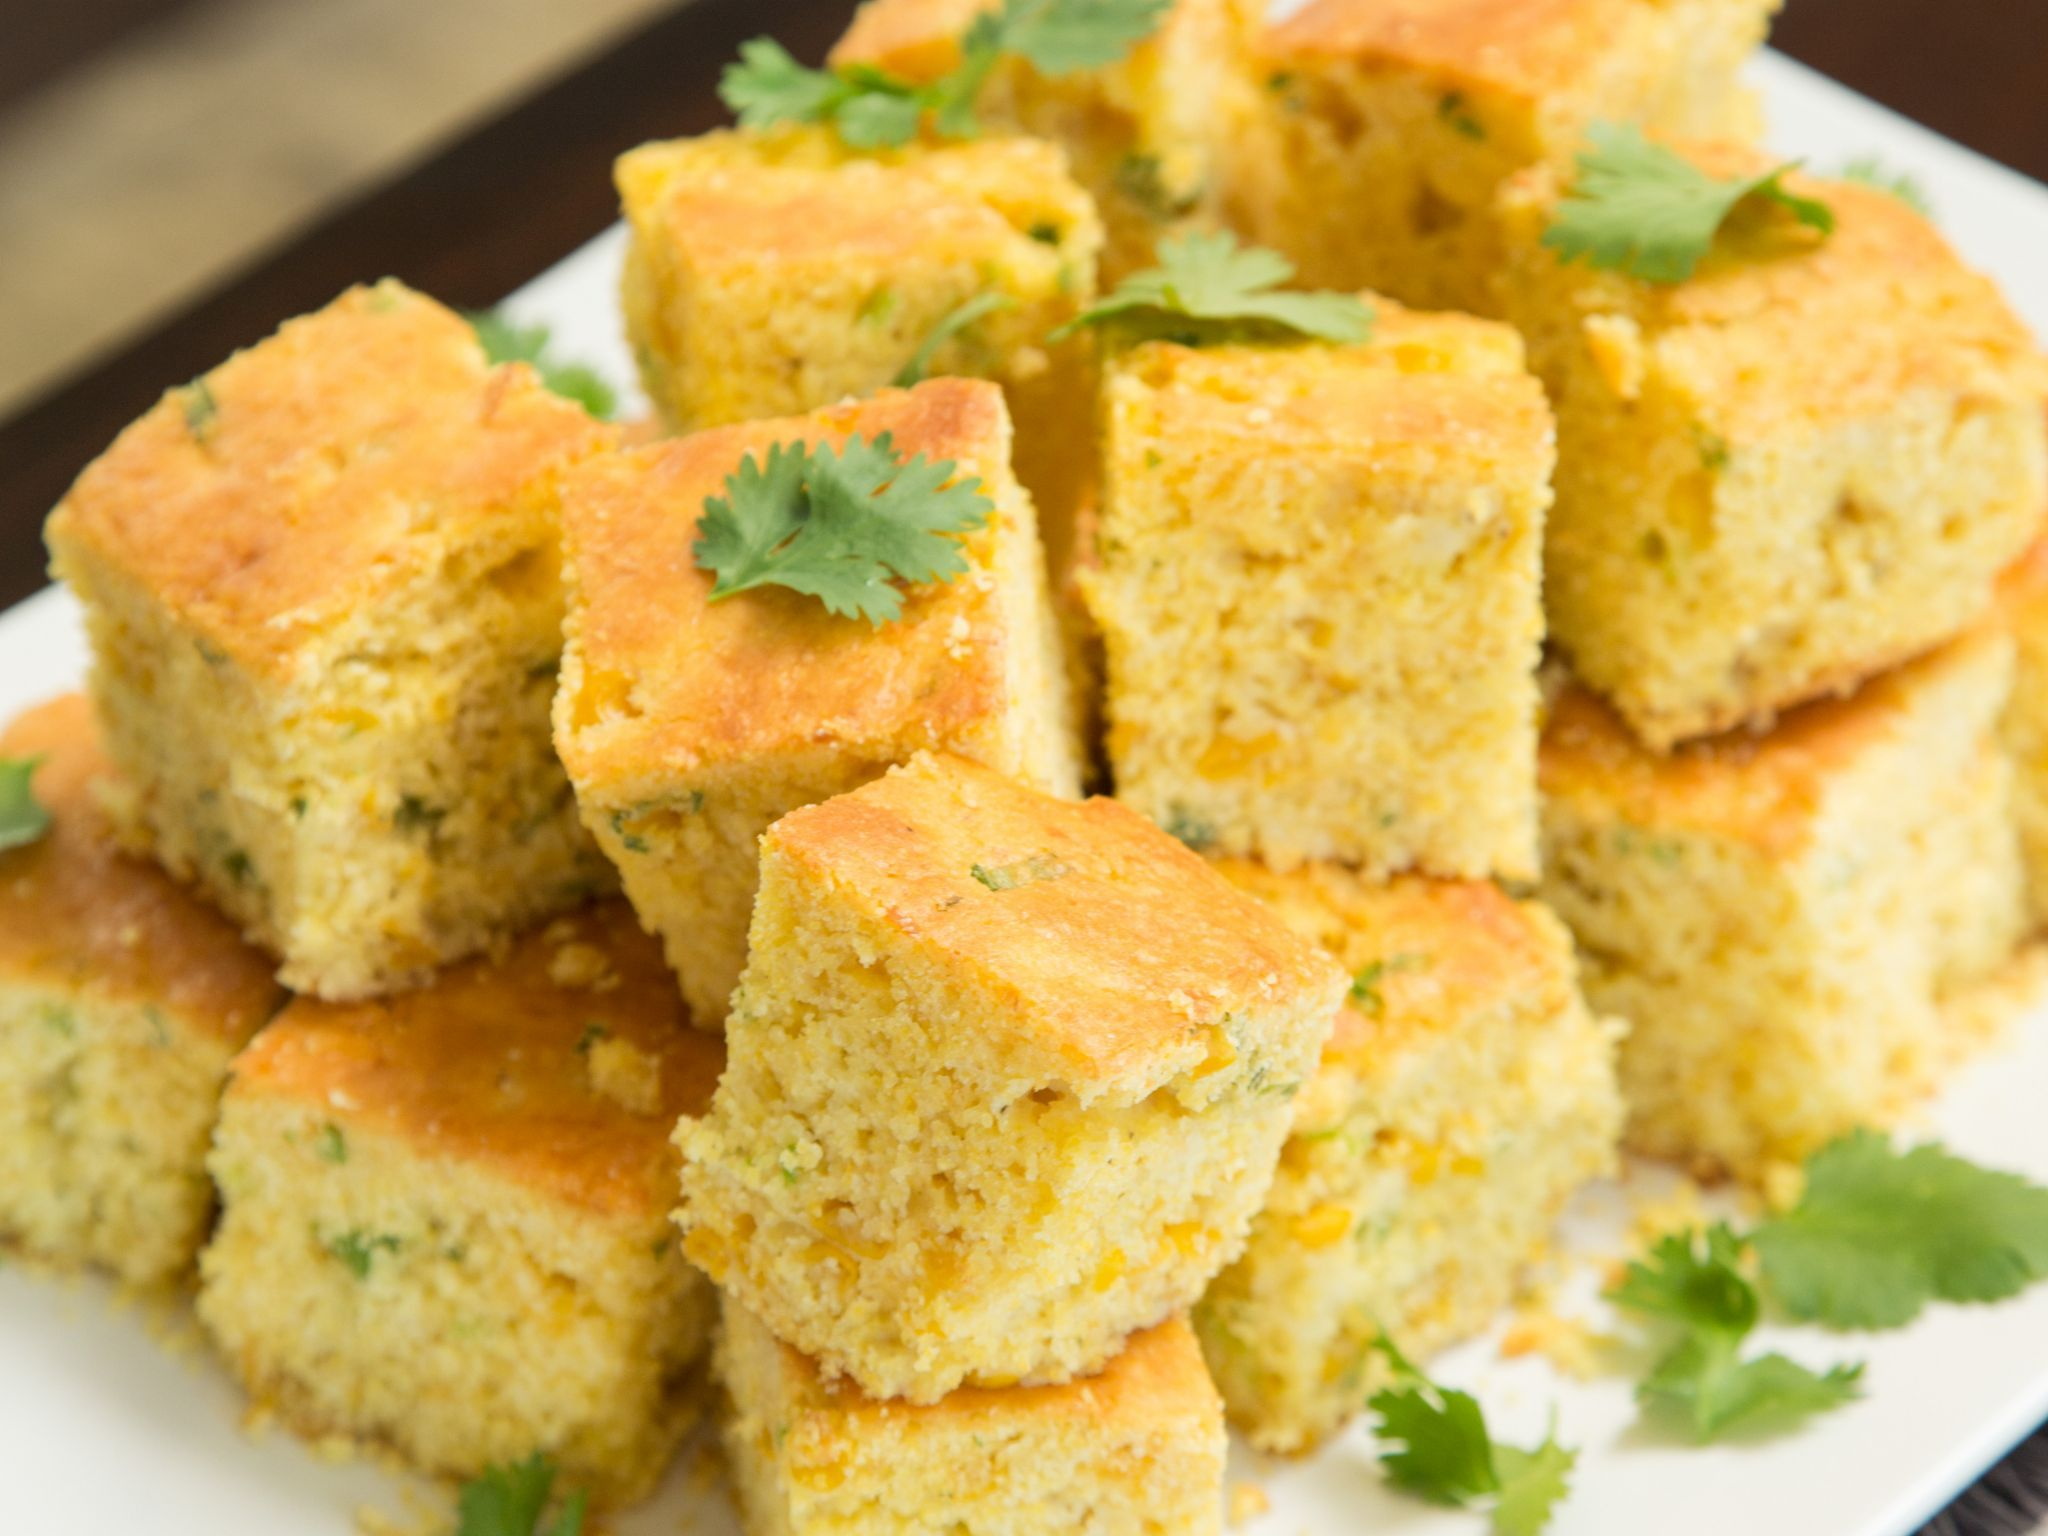 Creamed cornbread with jalapeno butter recipe ayesha curry creamed cornbread with jalapeno butter ayesha currycurry foodbutter recipecurry recipescornbreadcurriesfood networkholiday forumfinder Gallery